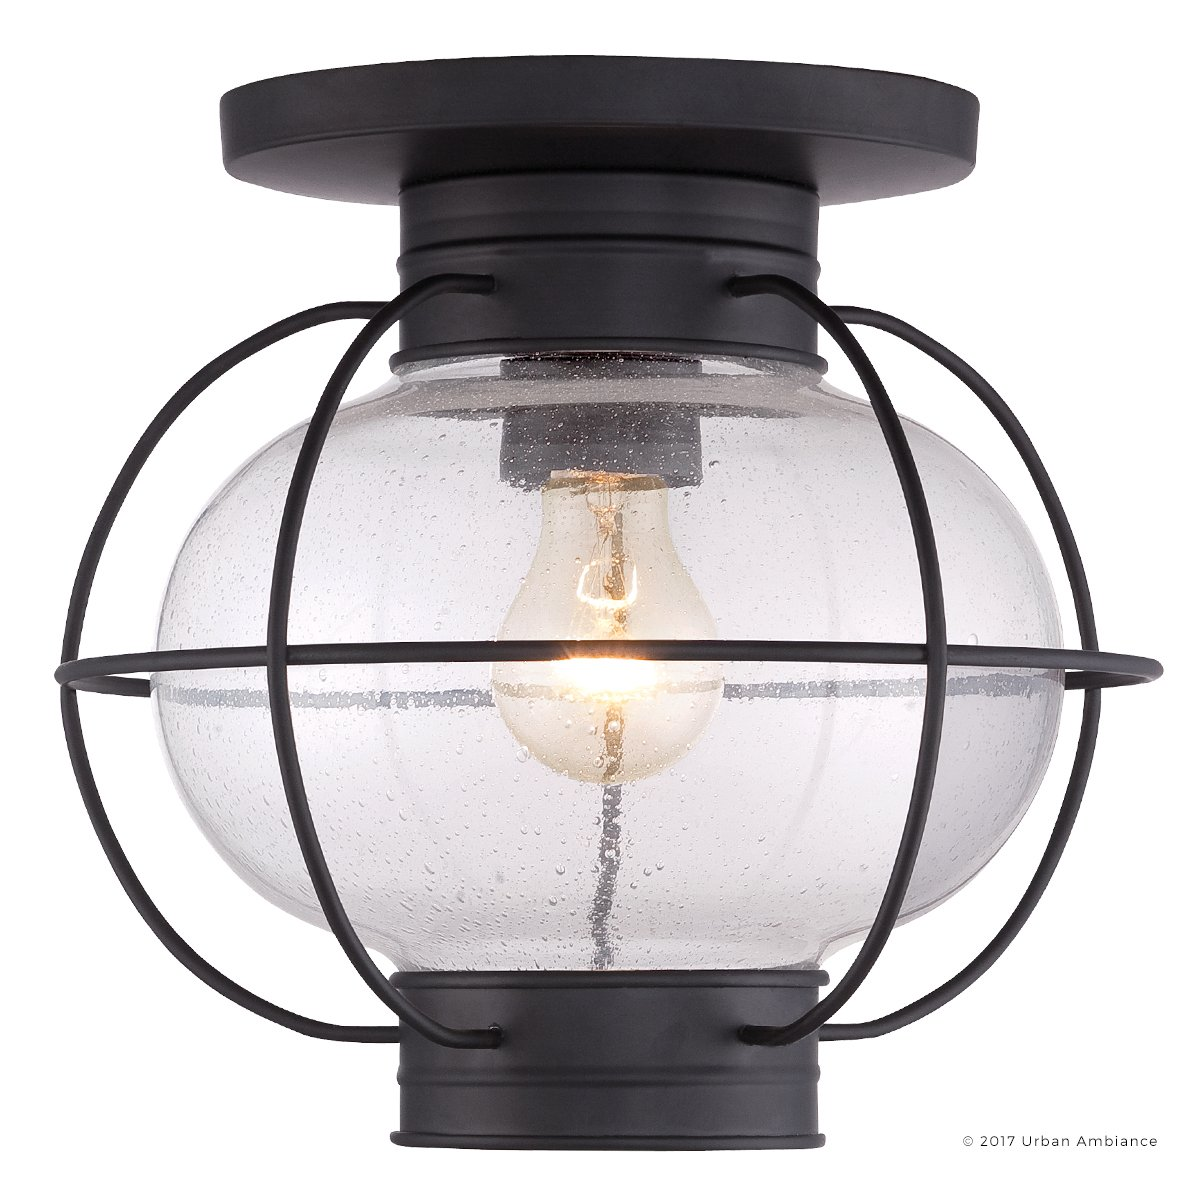 Luxury Nautical Outdoor Ceiling Light, Small Size: 10.5''H x 11.5''W, with Art Deco Style Elements, Cage Design, High-End Black Silk Finish and Seeded Glass, UQL1034 by Urban Ambiance by Urban Ambiance